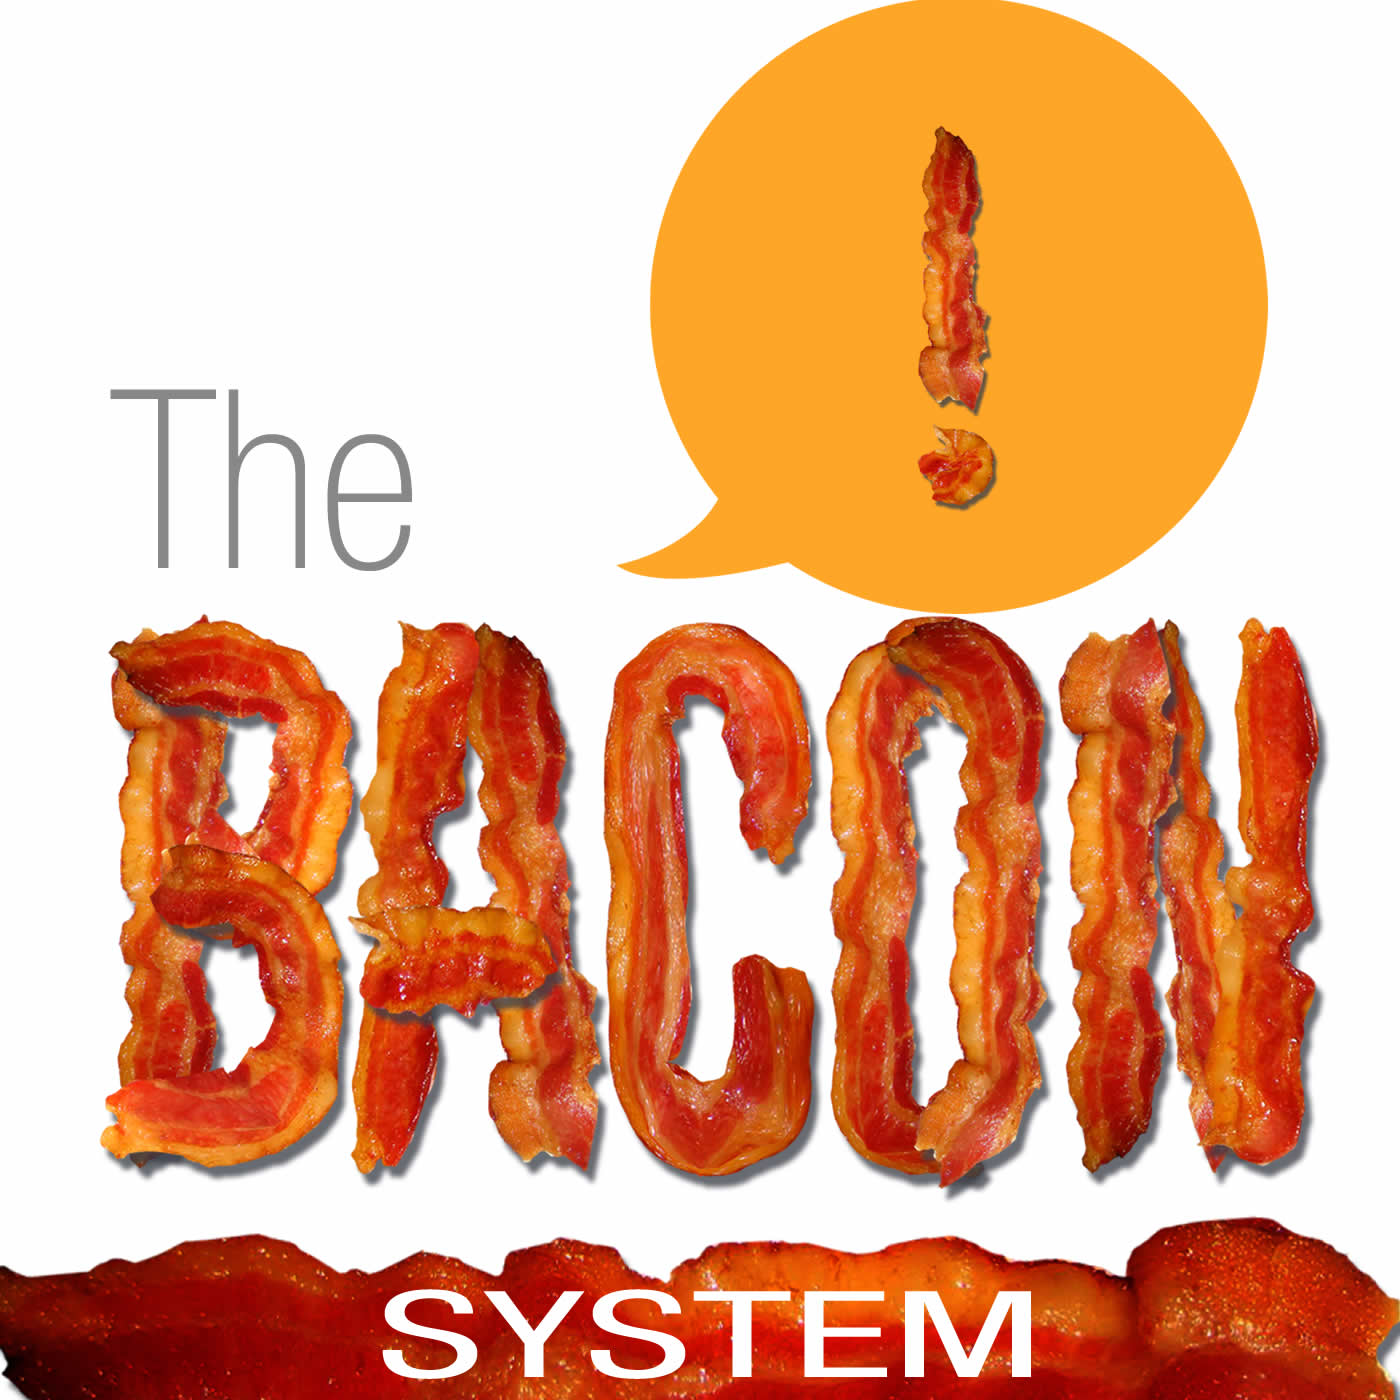 The Bacon System The Bacon System - Sales Page - The Bacon